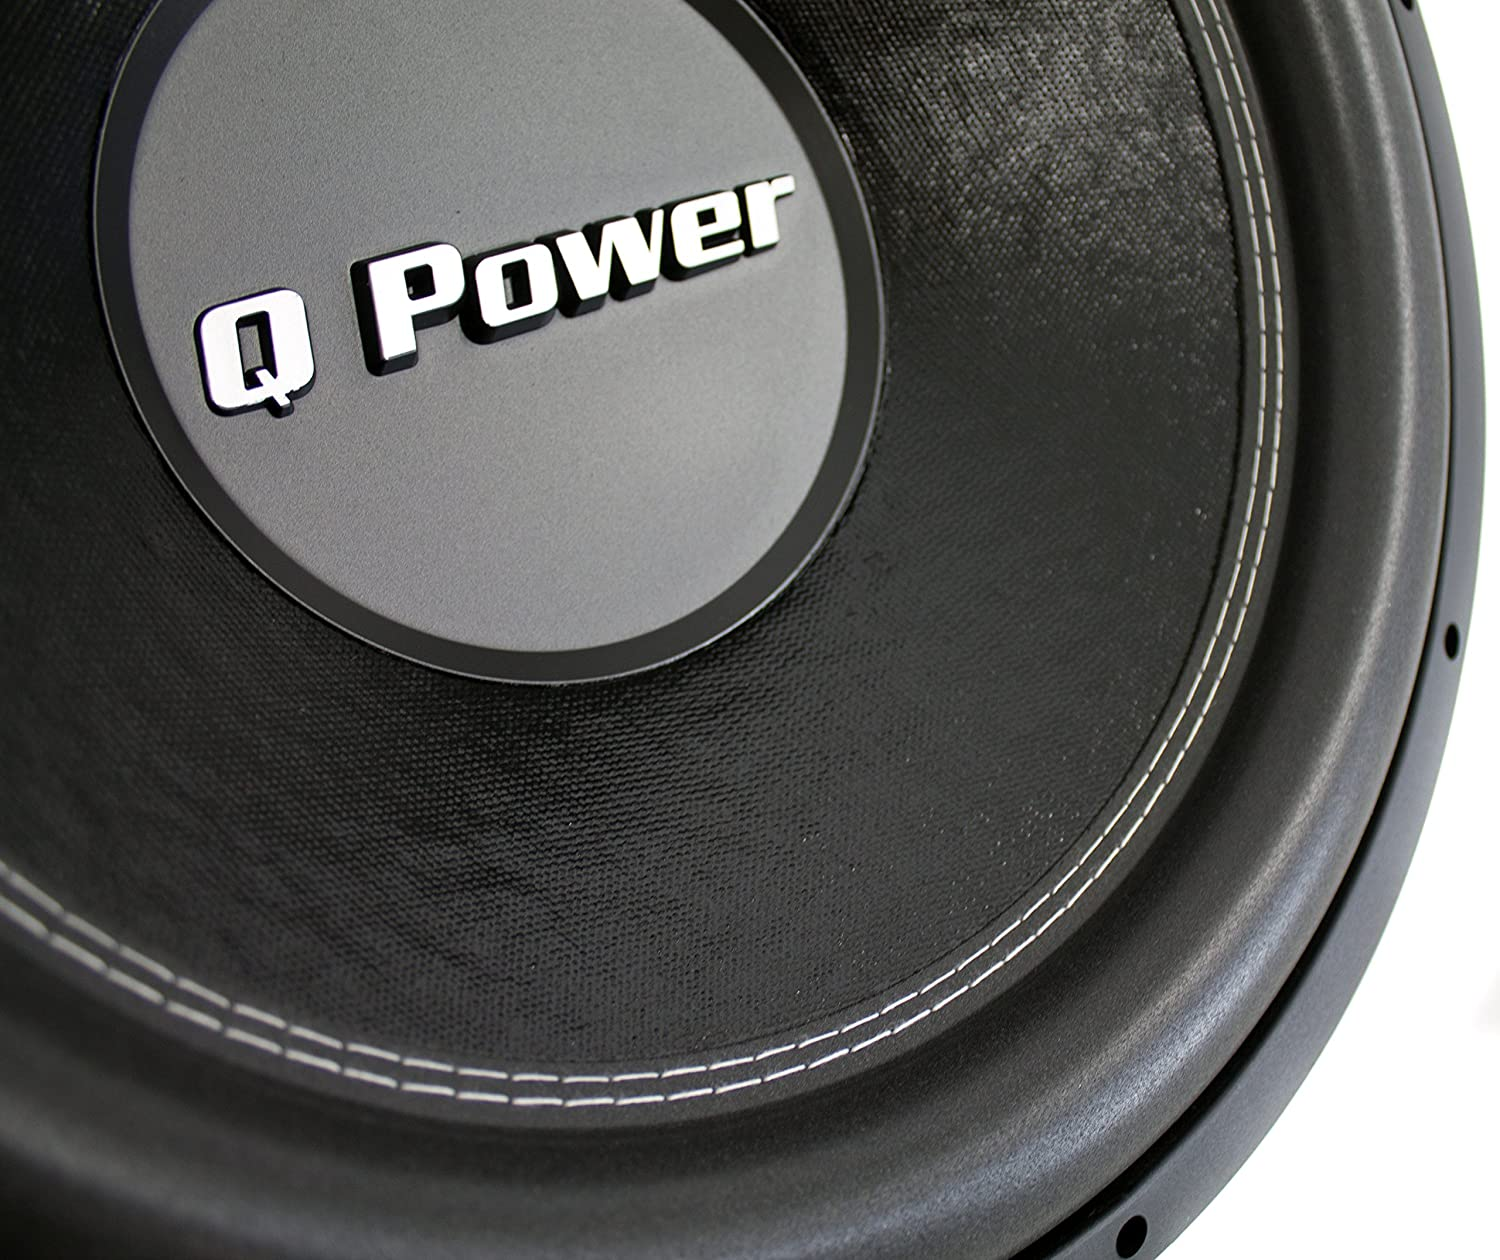 Q Power Qpf15 15 2200w Deluxe Series Dual Voice Coil Wiring Diagram Subwoofer Wire Svc 2 Ohm Car Audio Electronics